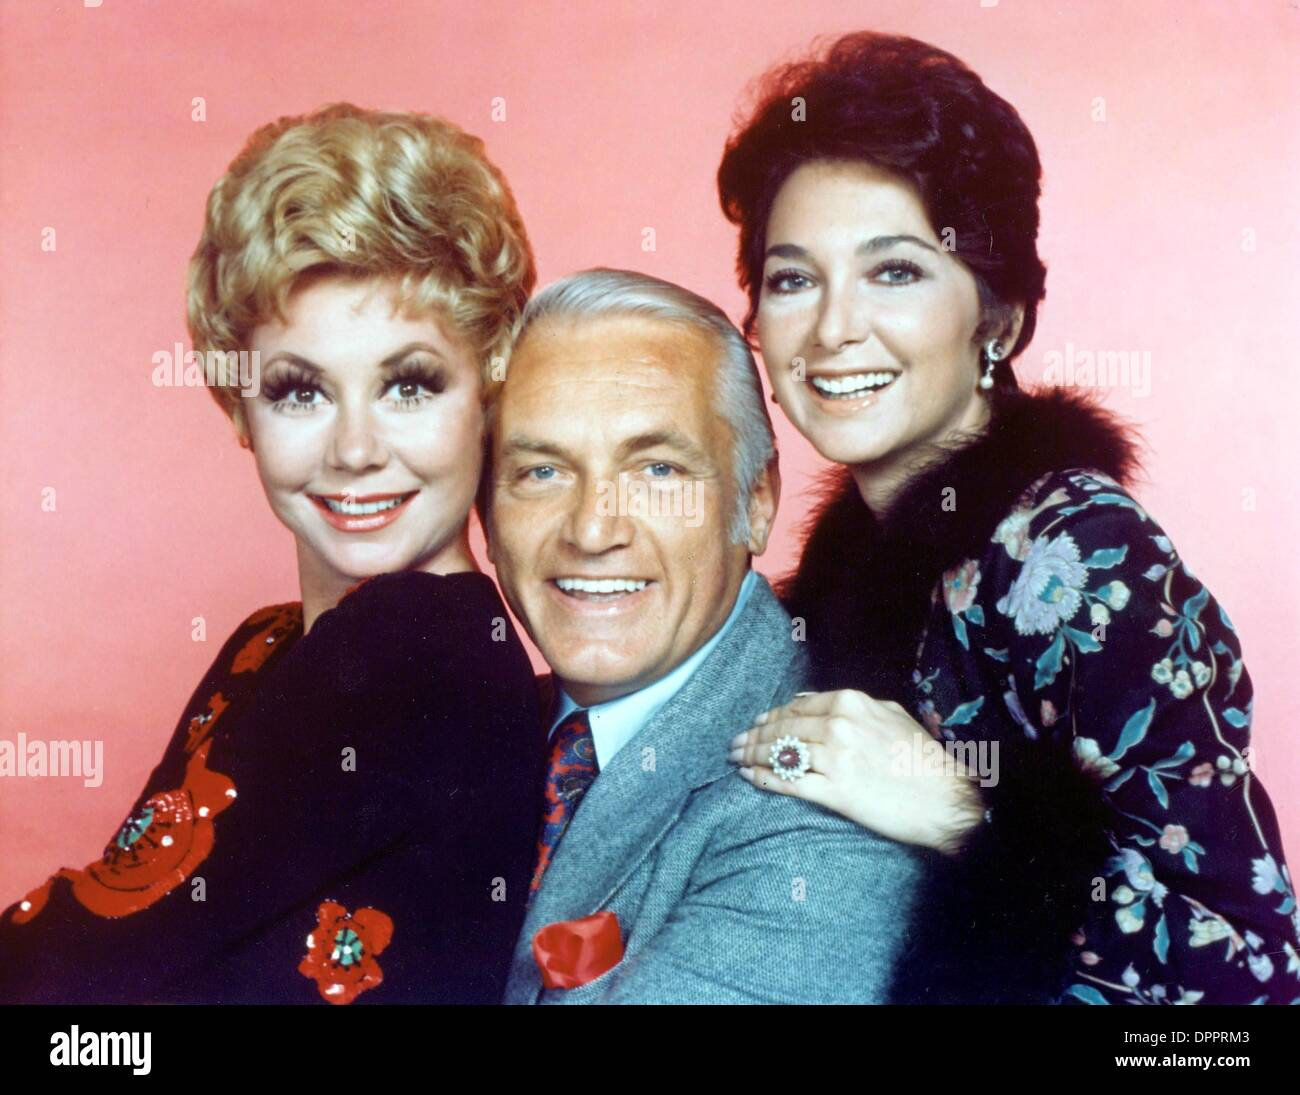 Aug. 10, 2006 - SUZANNE PLESHETTE WITH MITZI GAYNOR AND TED KNIGHT .SUPPLIED BY (Credit Image: © Globe Photos/ZUMAPRESS.com) - Stock Image